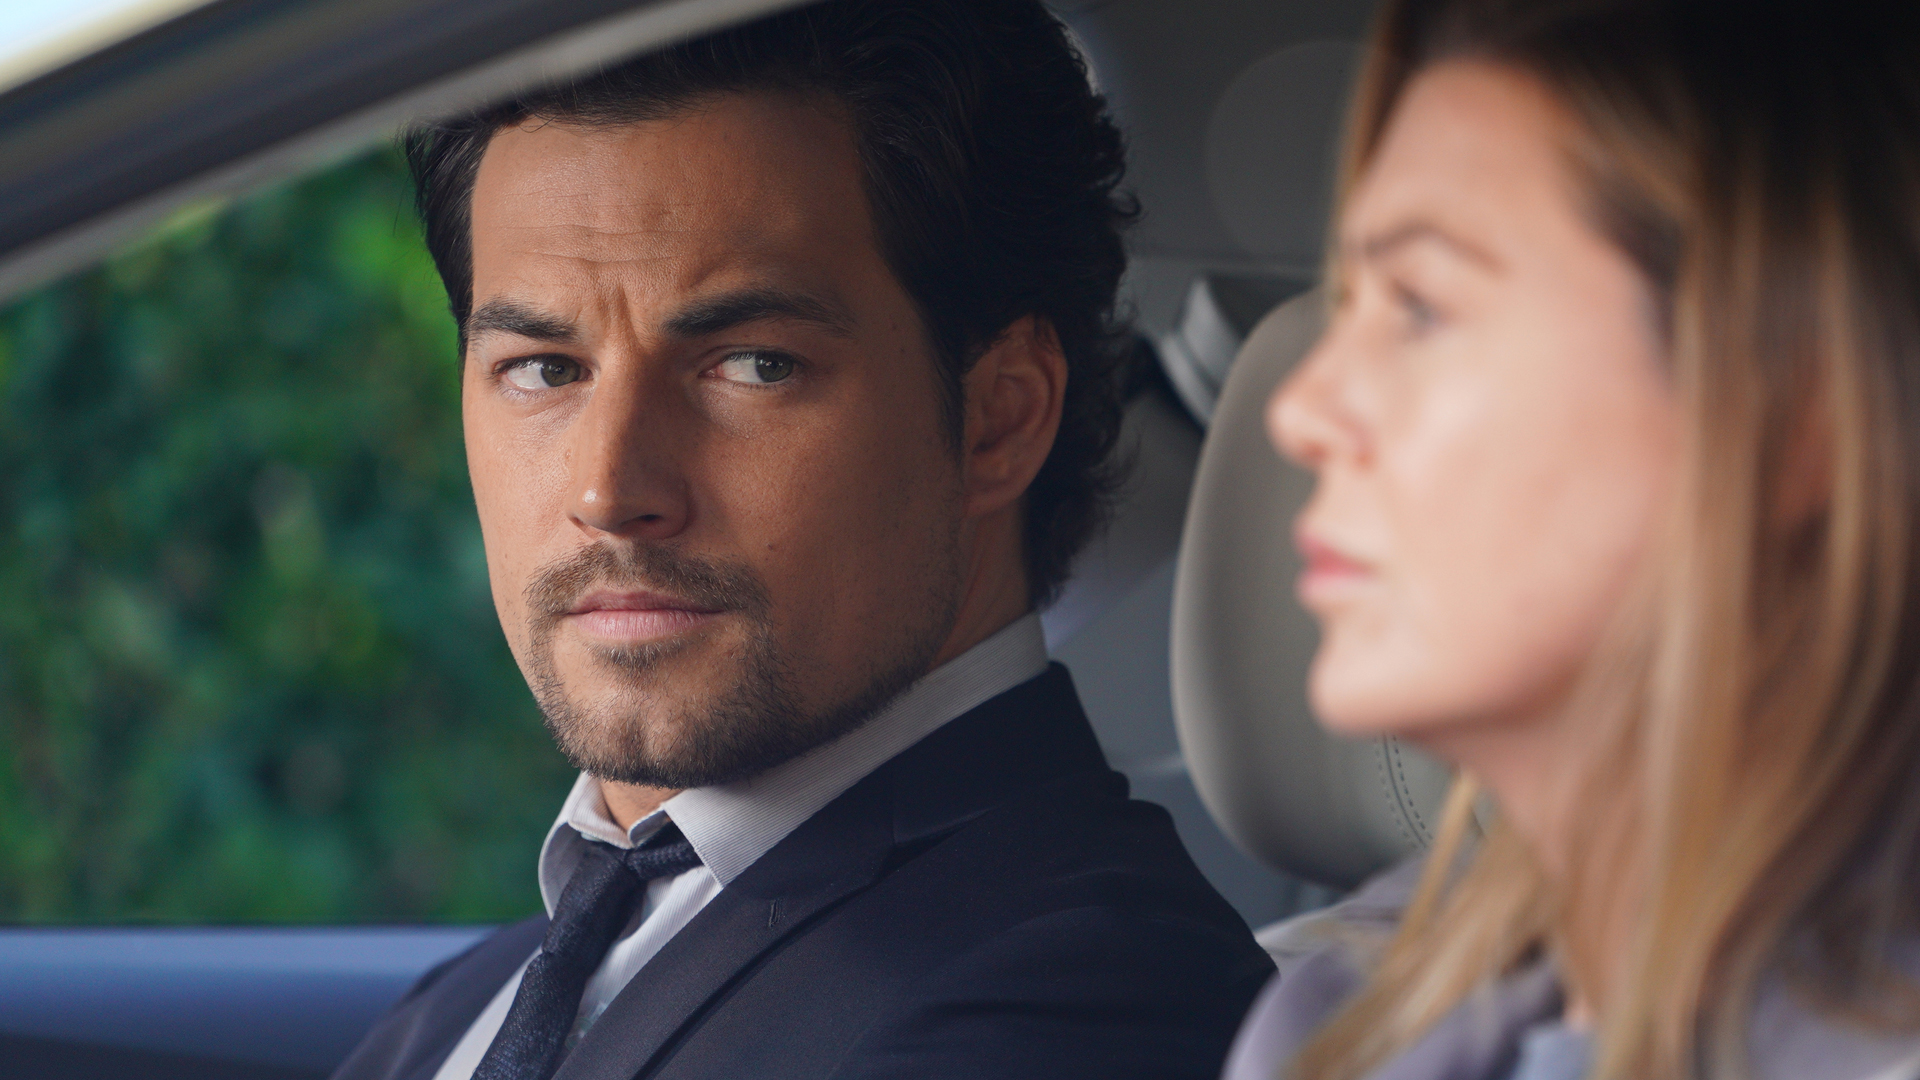 Grey S Anatomy Giacomo Gianniotti Says The Season 17 Premiere Will Start With A Time Jump